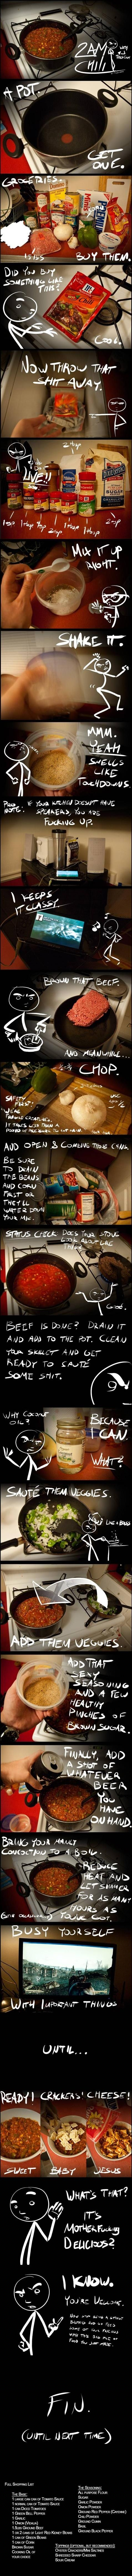 Easy stovetop chili. Disregard the language, but this is delicious :-)